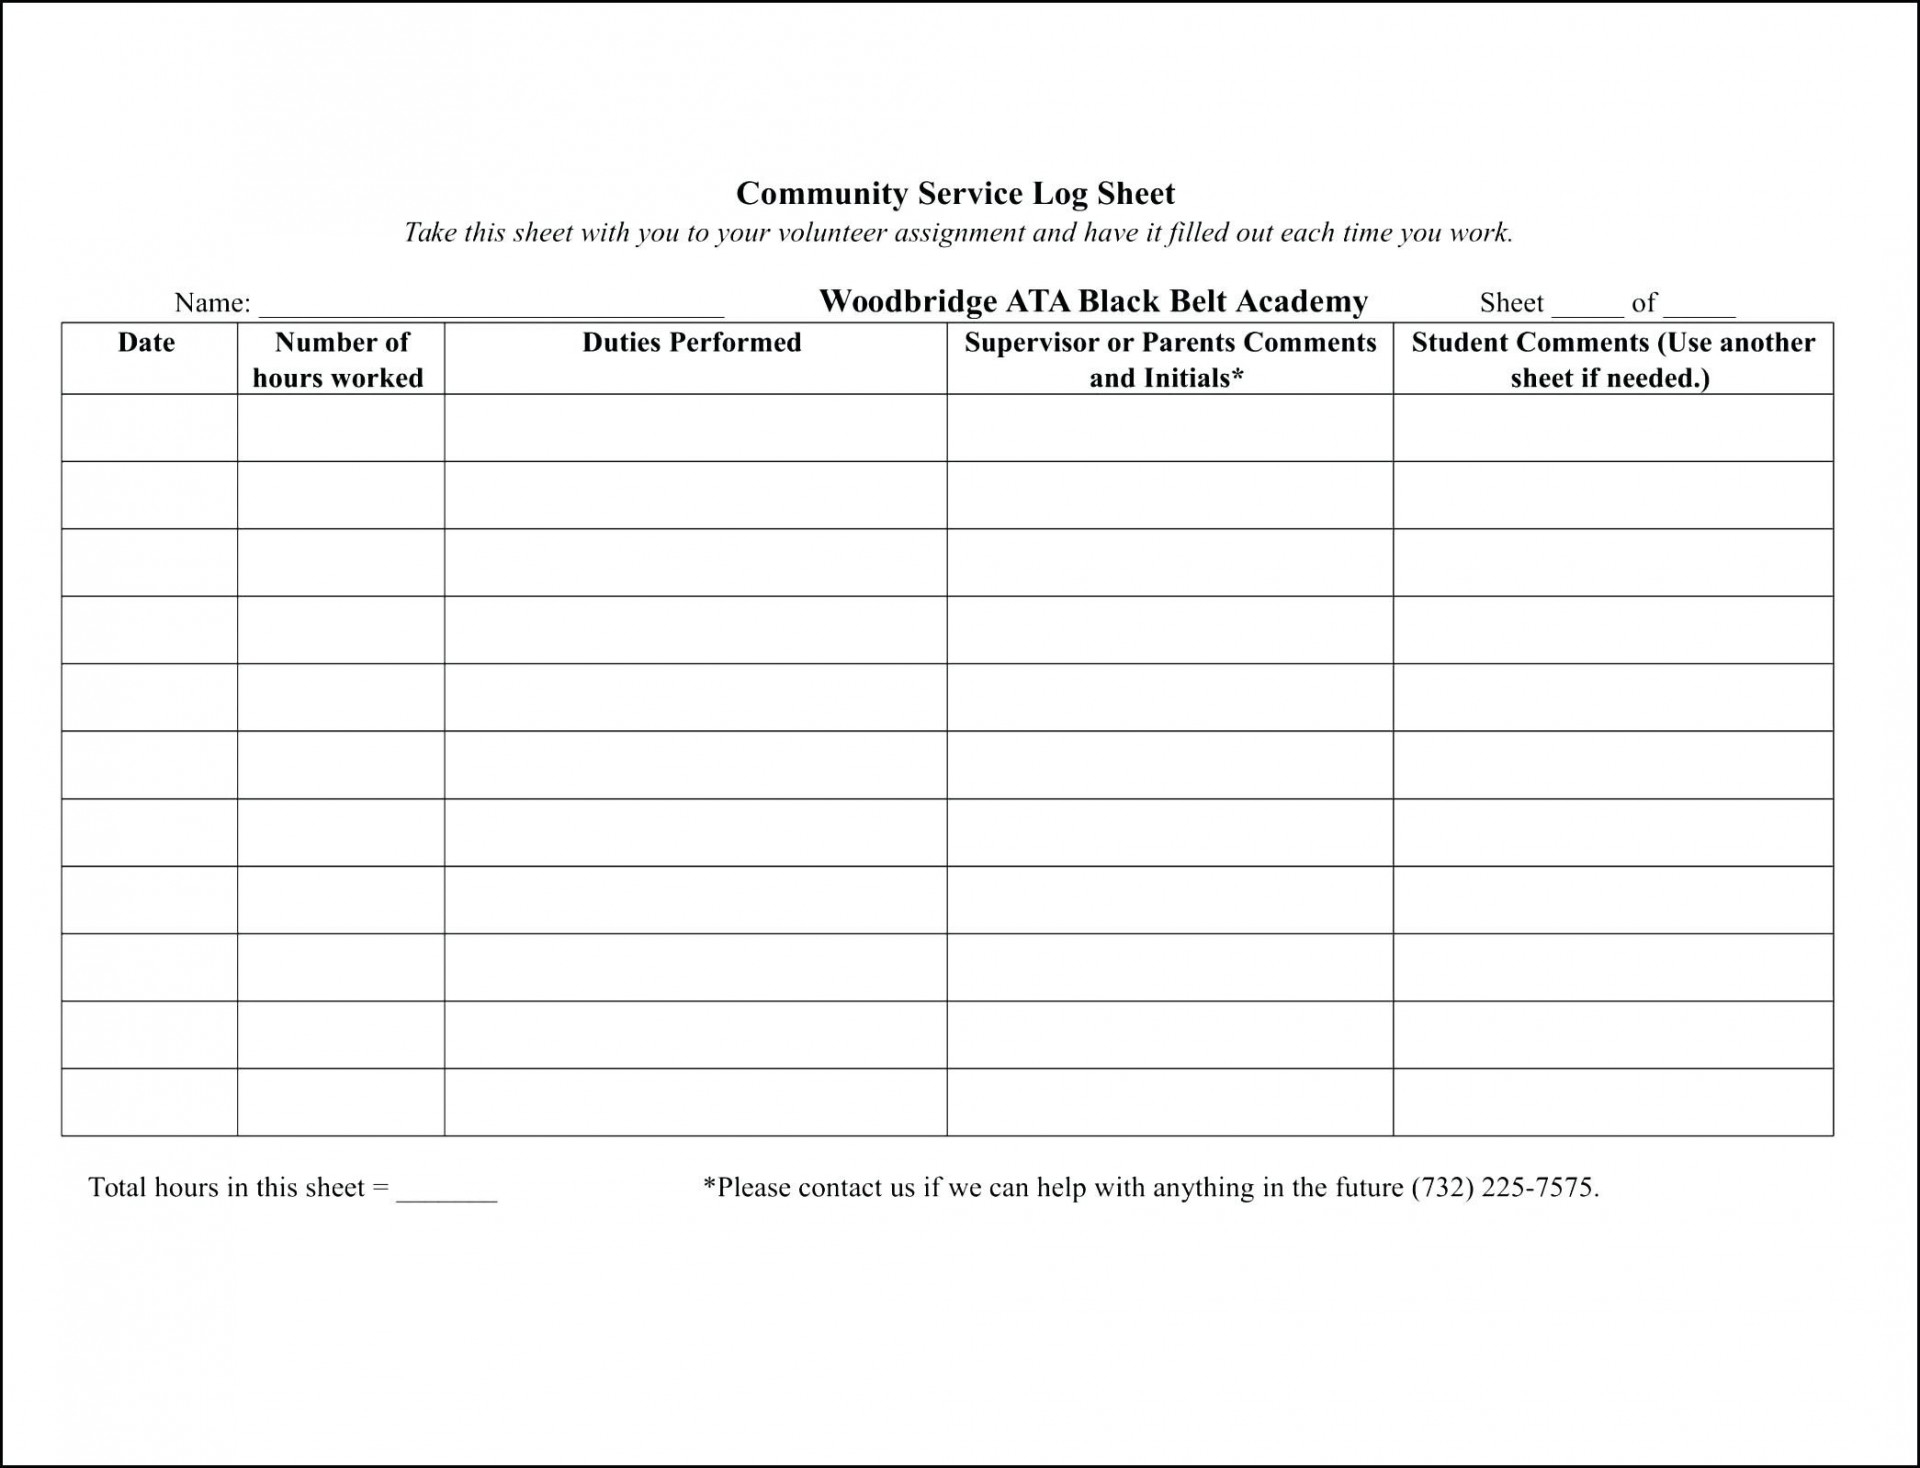 020 Sign In Sheet Template Free Work Activity Log Hola Klonec Co - Free Printable Community Service Log Sheet